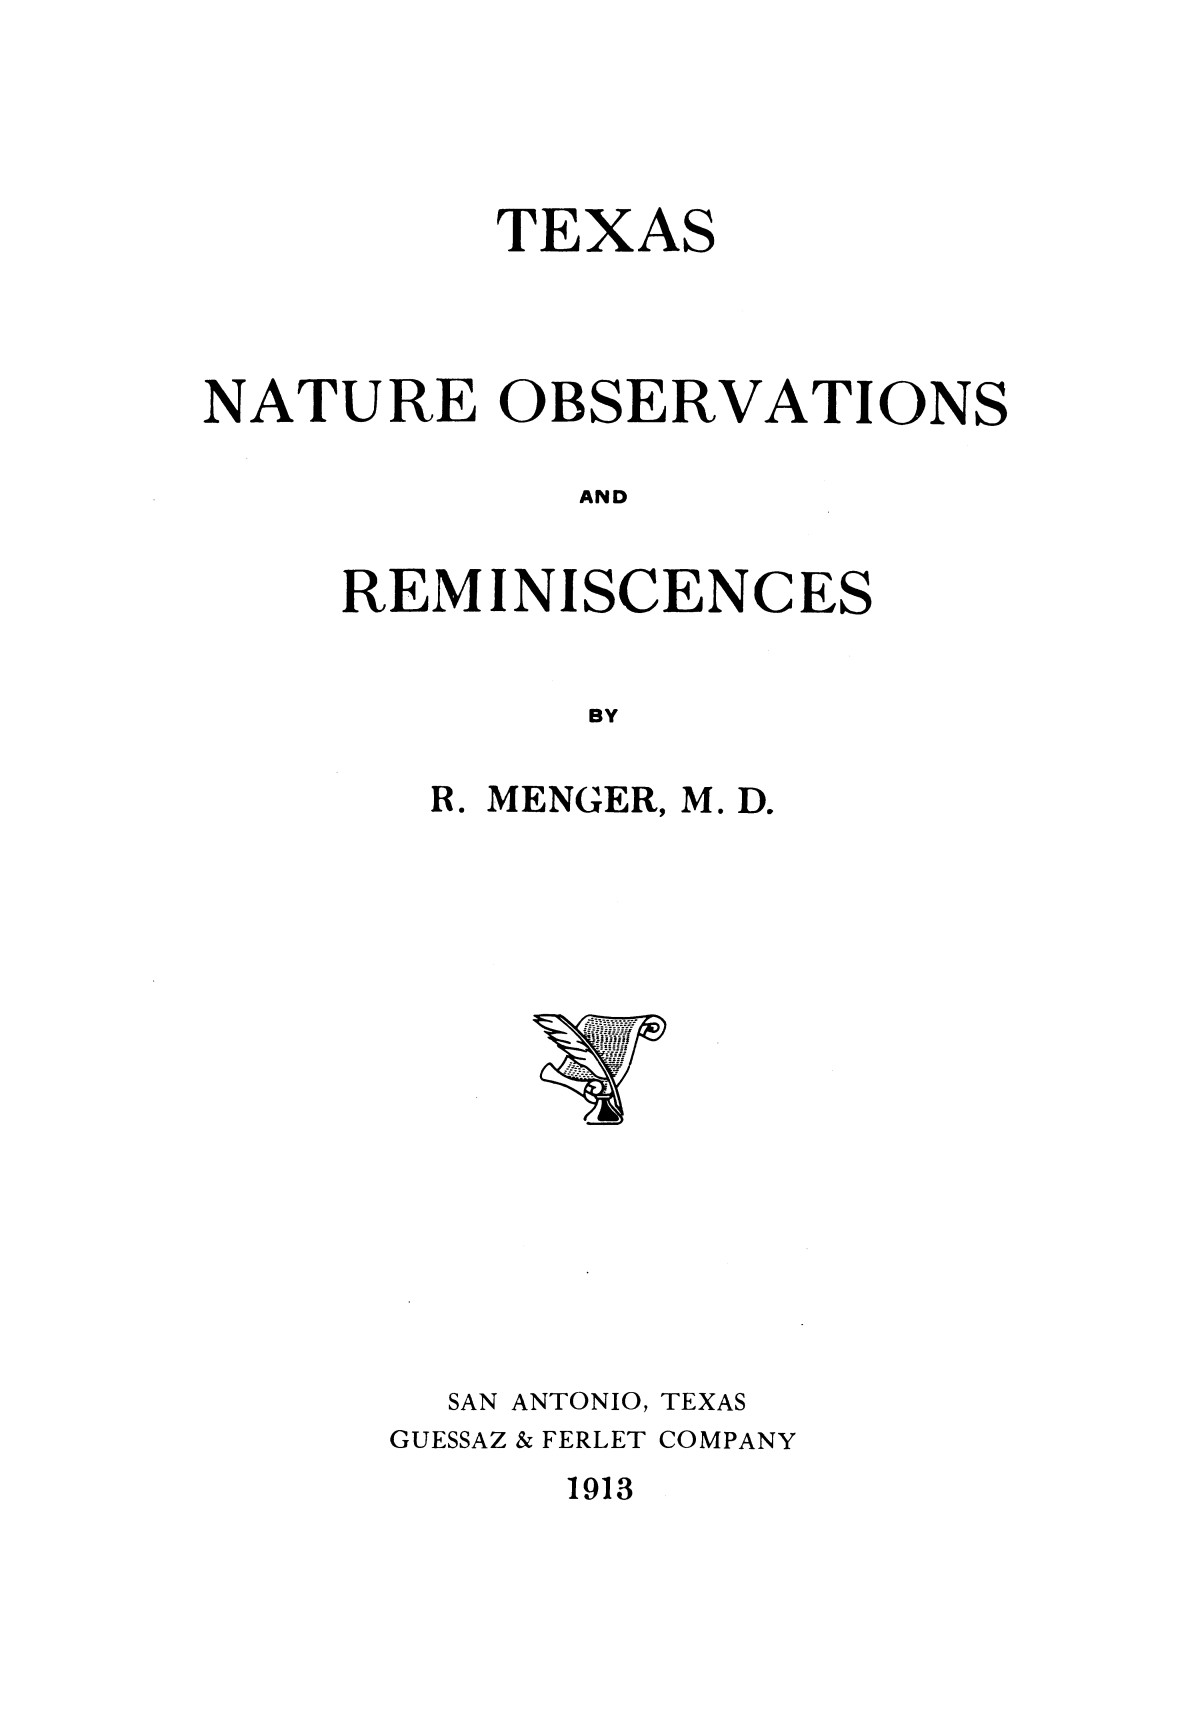 Texas Nature Observations and Reminiscences                                                                                                      [Sequence #]: 1 of 322